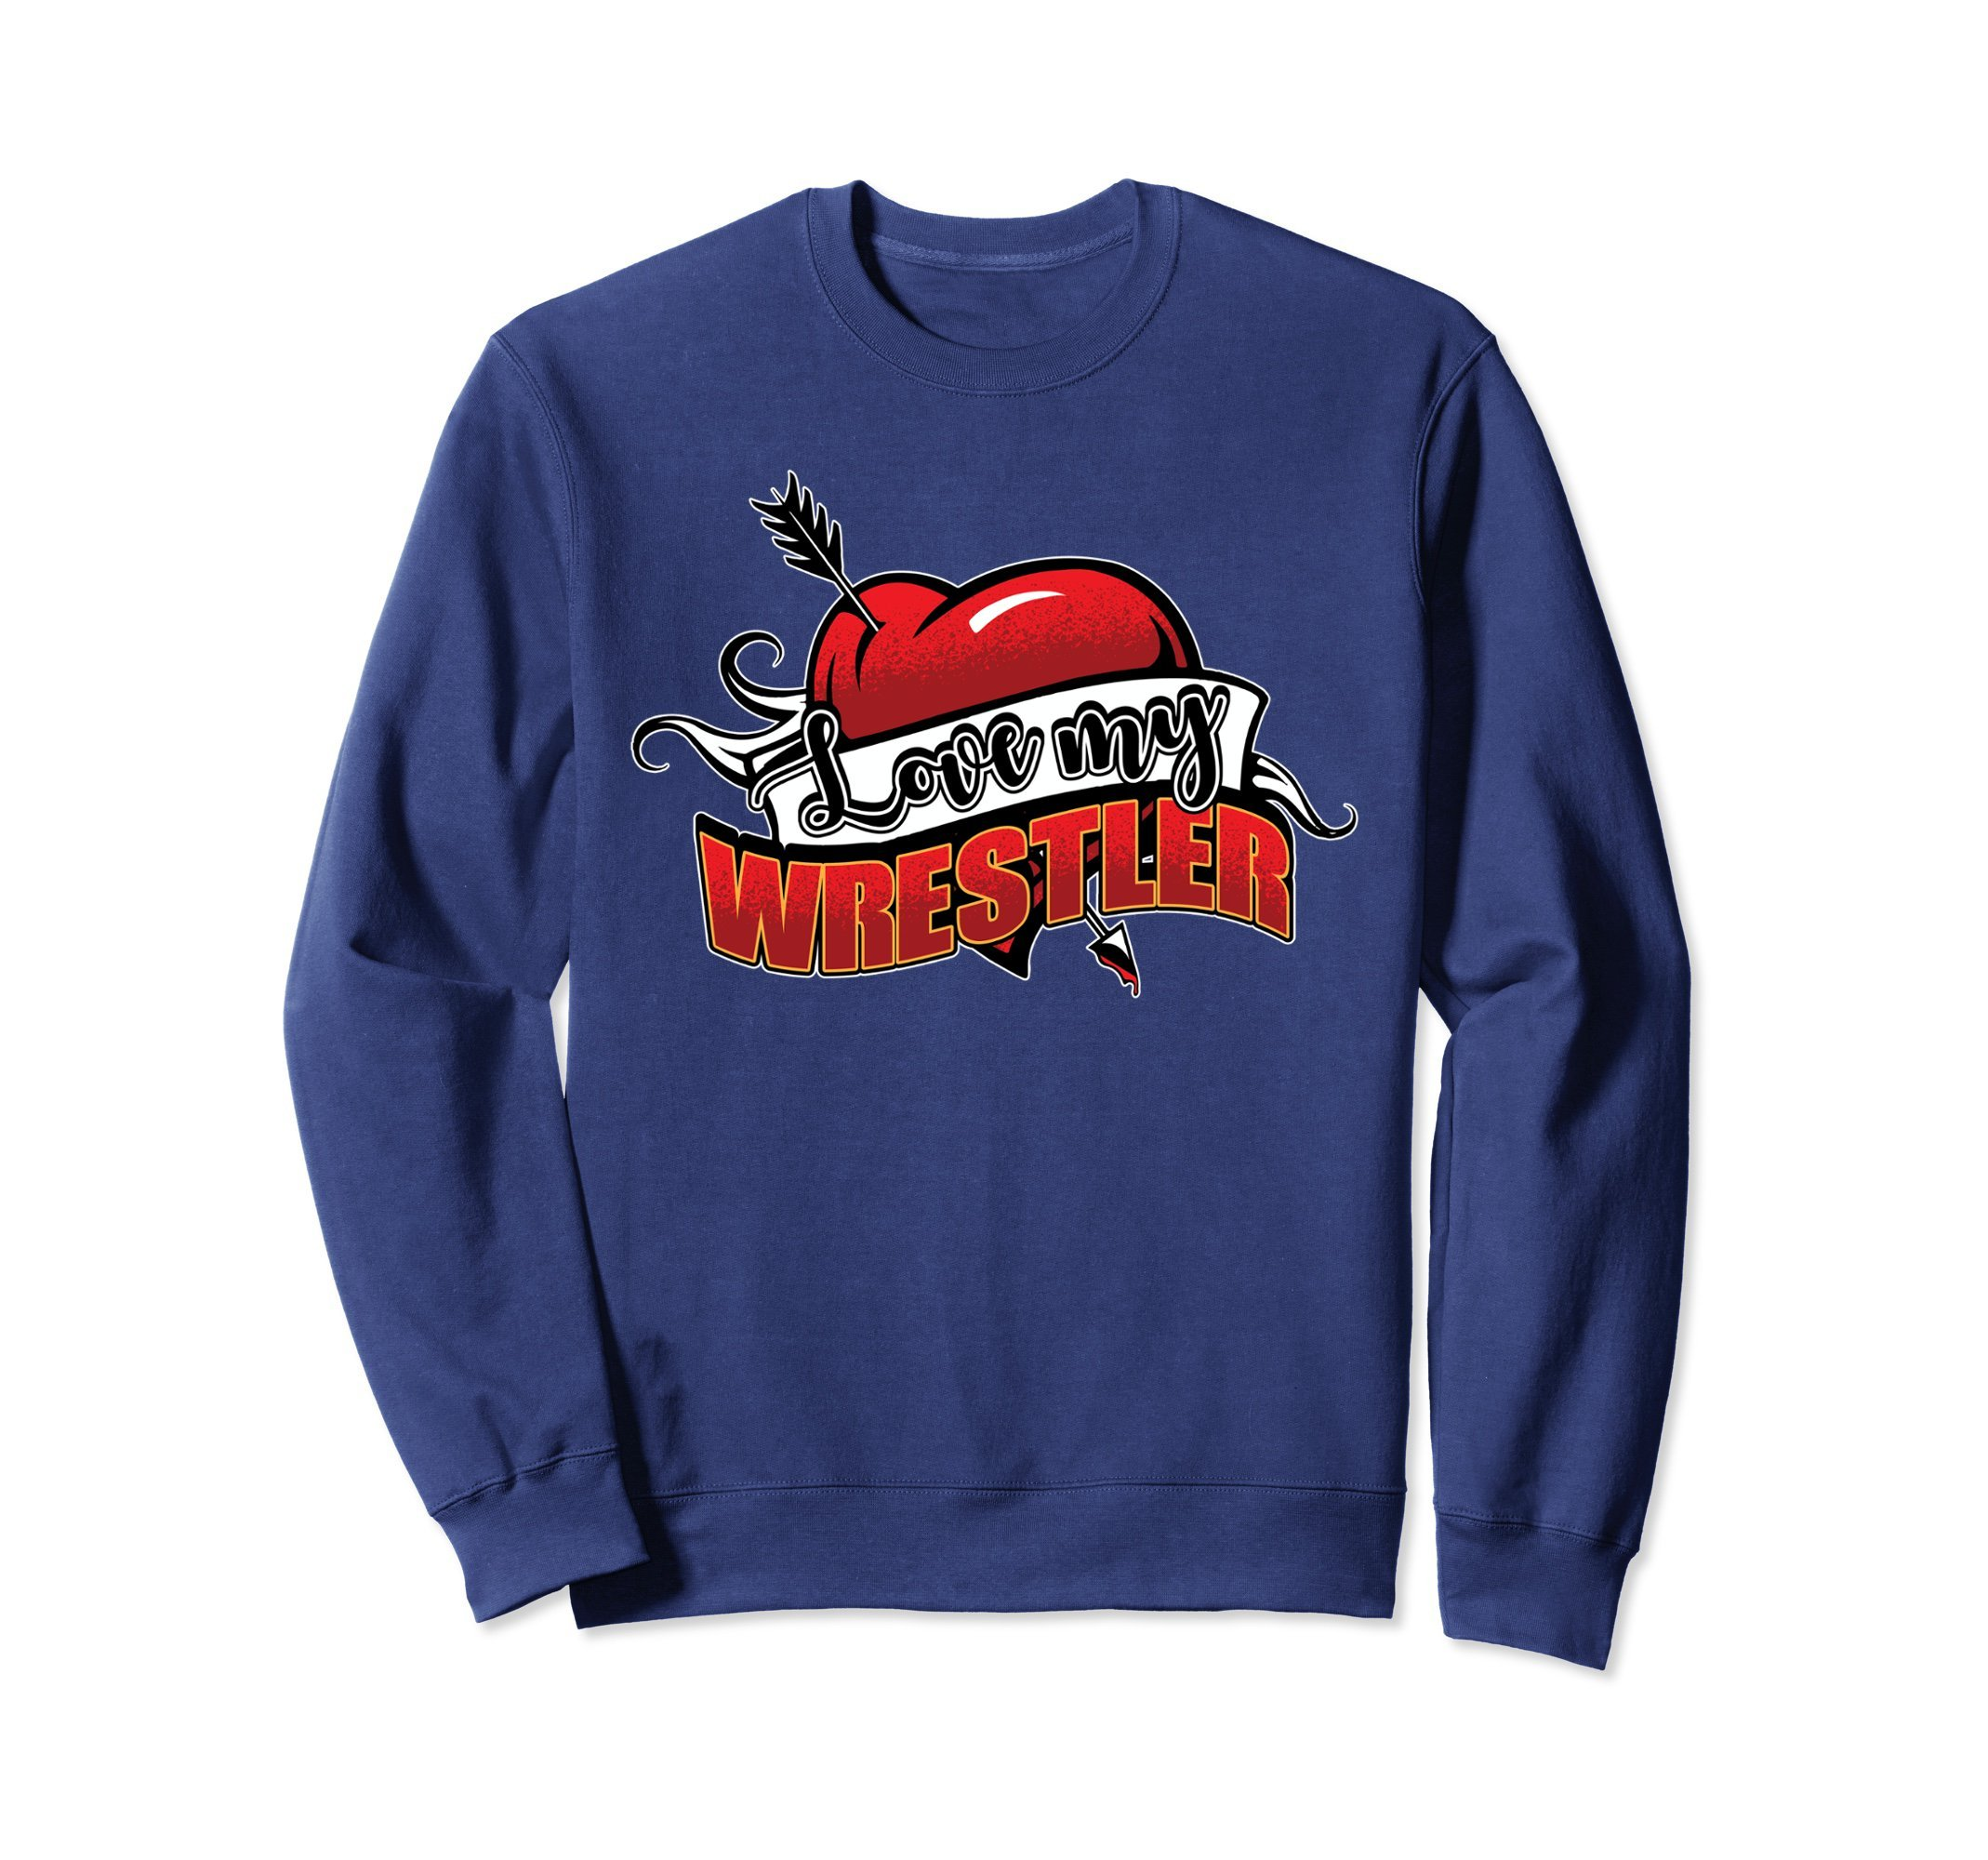 Unisex Wrestling Sweatshirt - Love My Wrestler Sweater 2XL Navy by Wrestling Shirt by Crush Retro